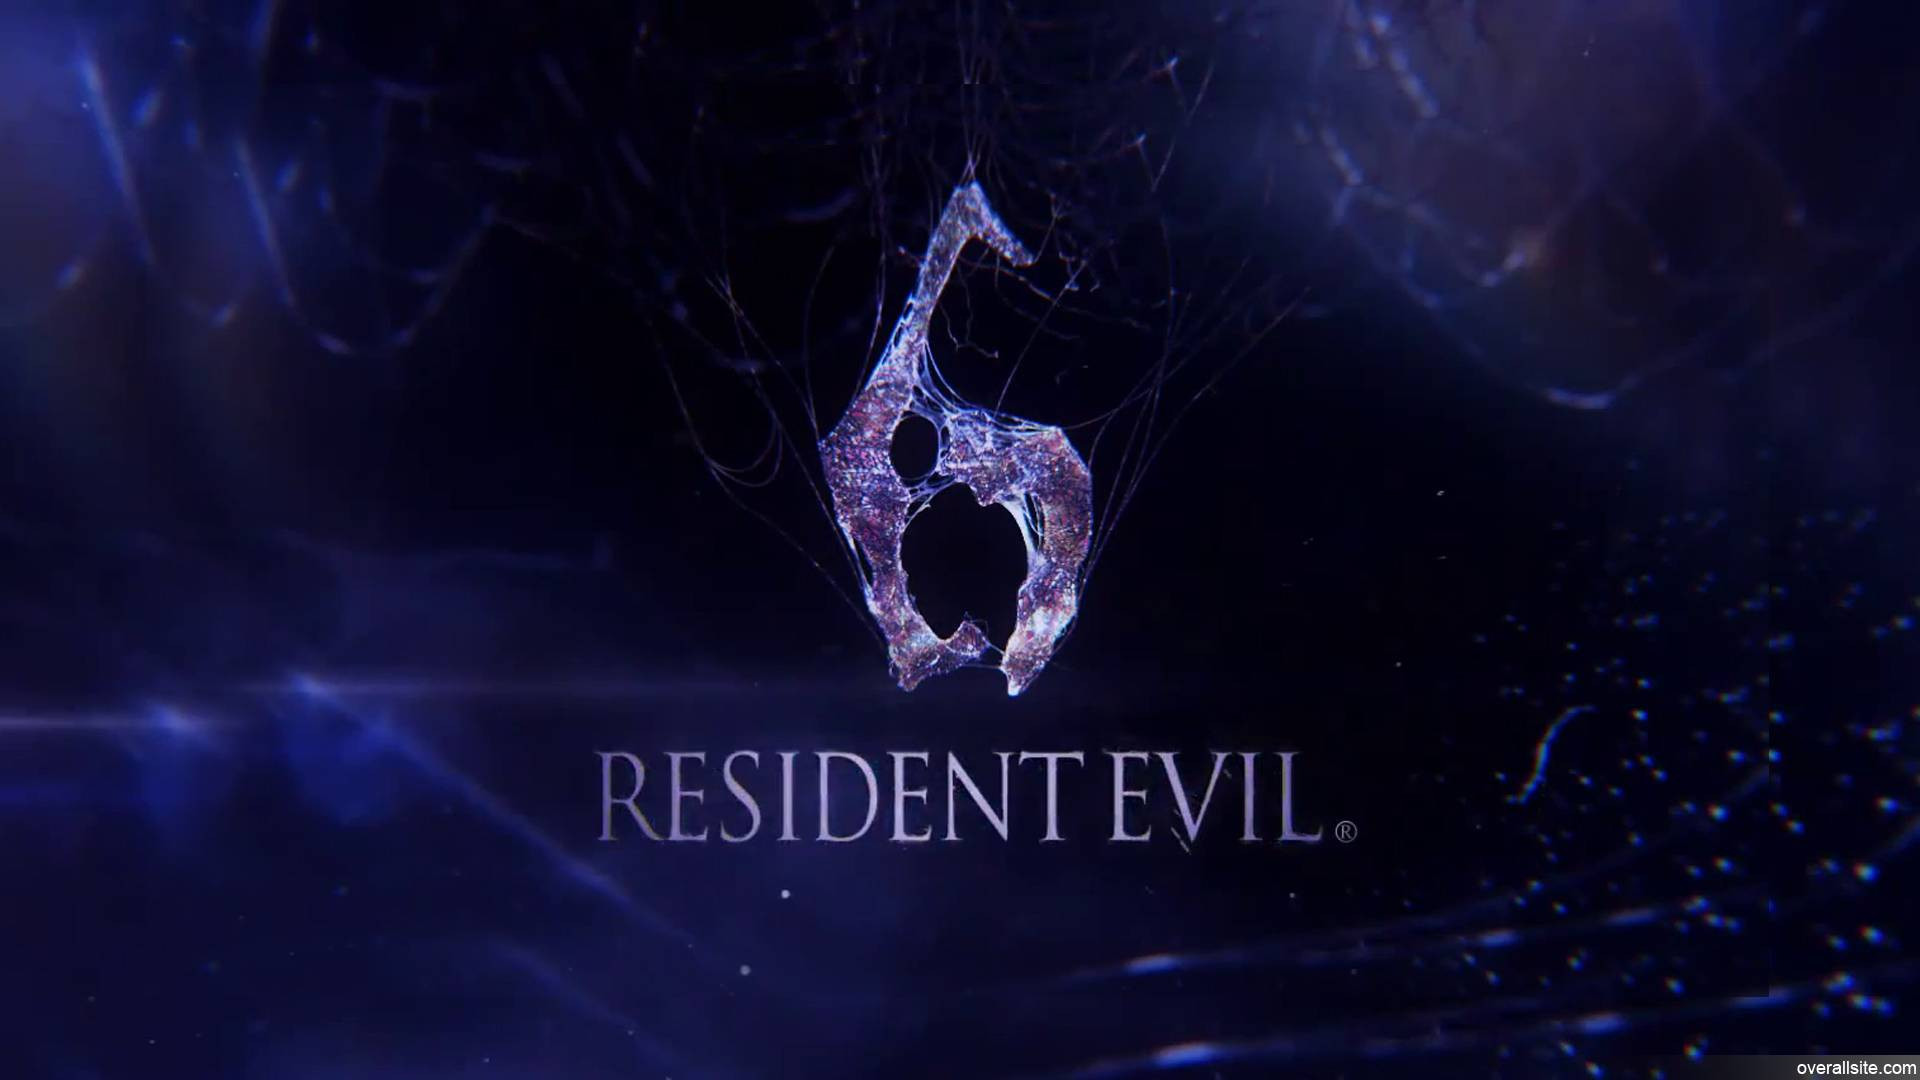 Resident Evil 6 Wallpapers In Hd